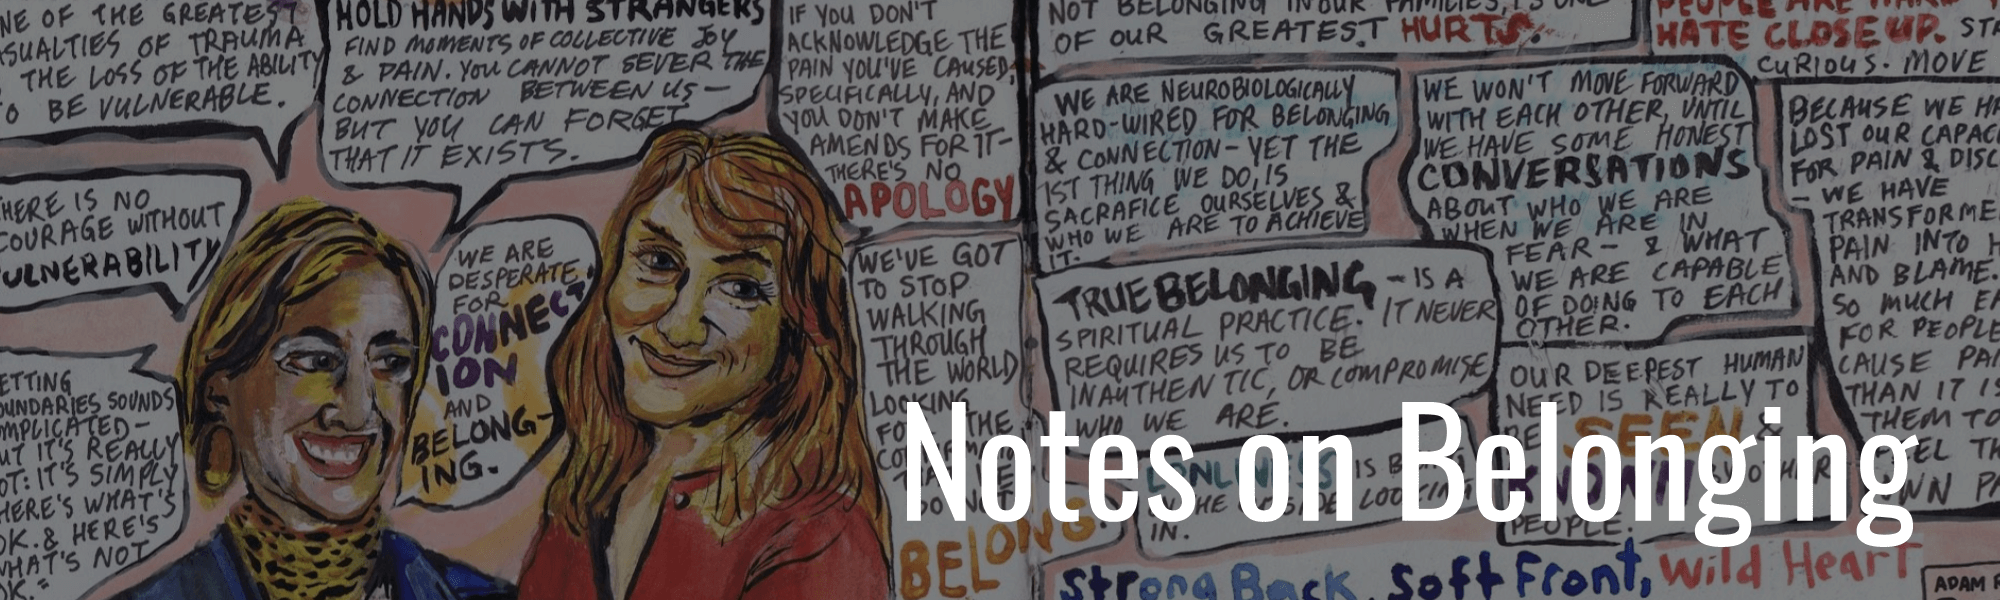 notes-on-belonging-illuminated-notes-content-offer-late-nite-art-download-page